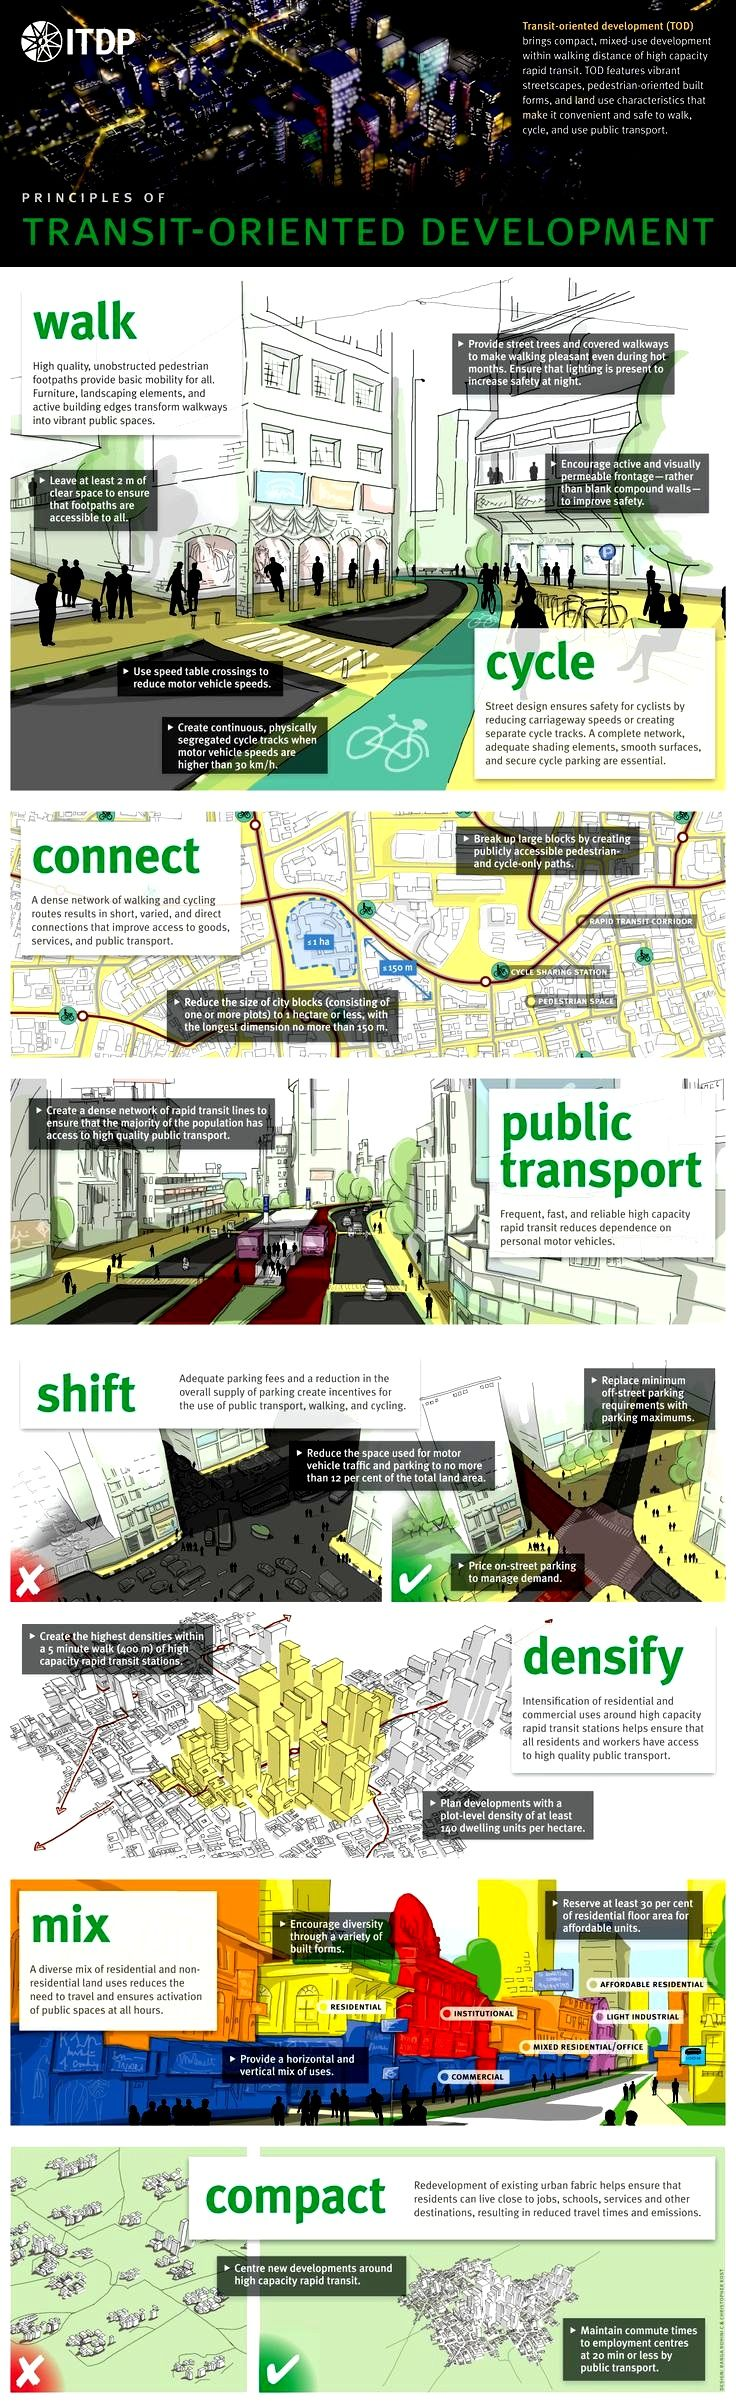 Best 25 Sustainable Transport Ideas On Pinterest Urban Planning Health Gov And Transport Info